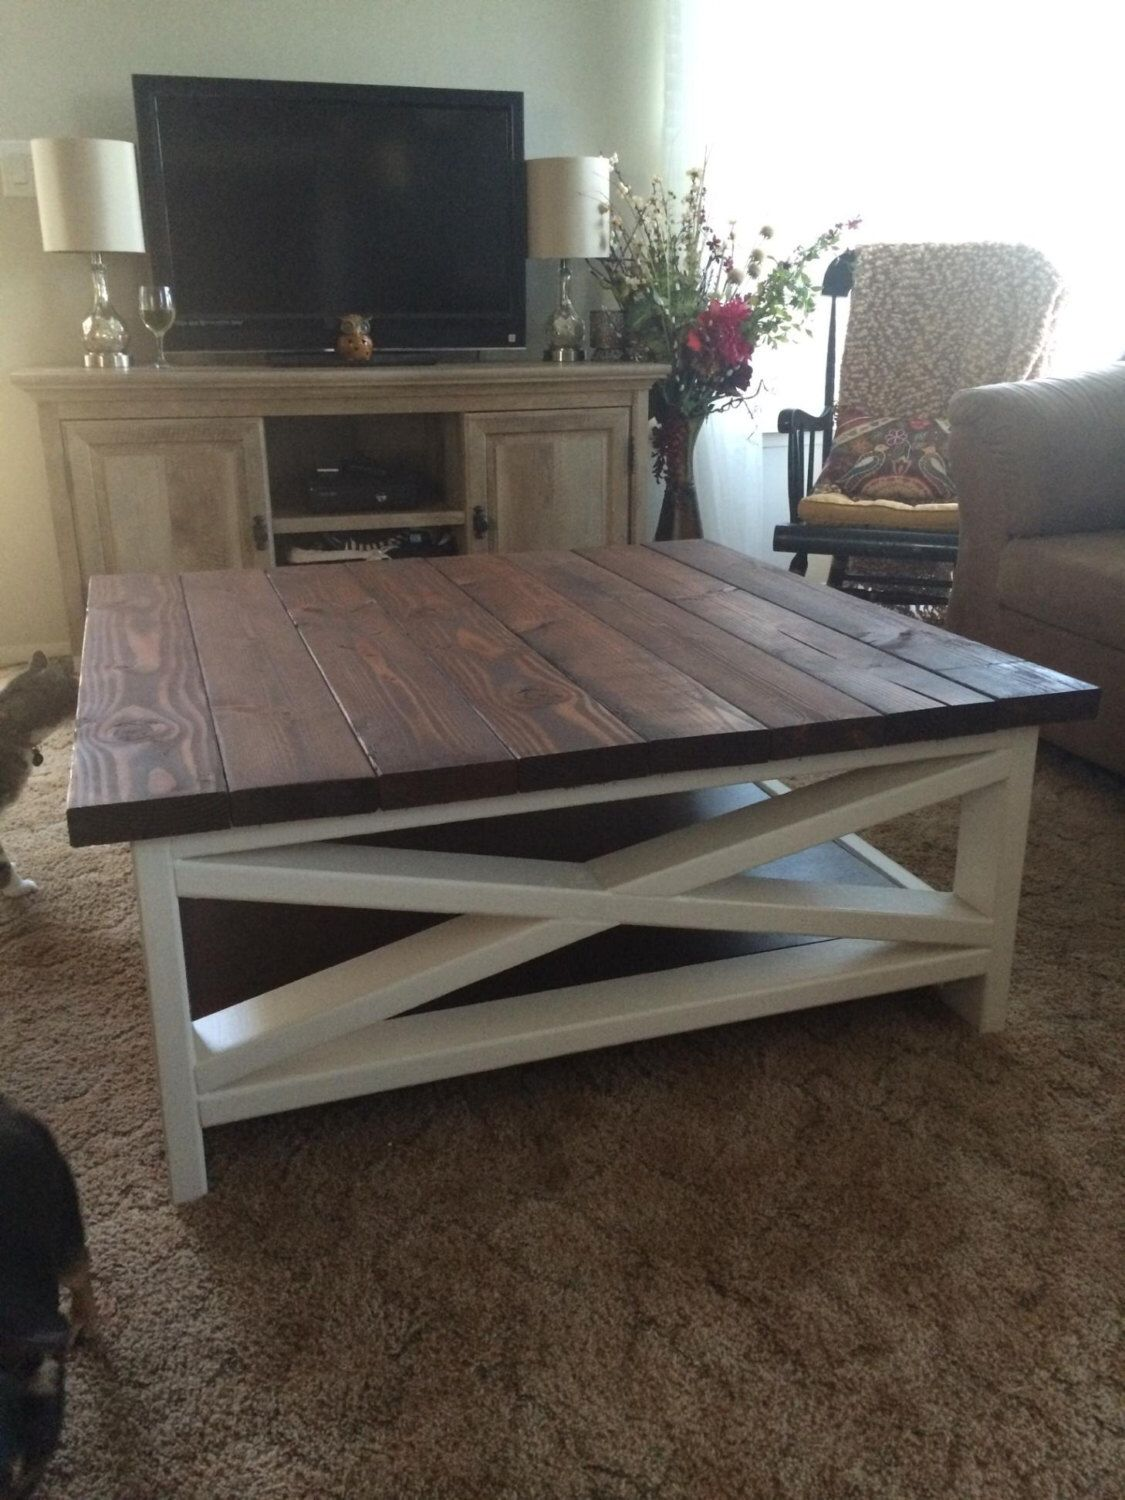 Rustic X Coffee Table by RusticAndWild on Etsy https://www.etsy.com/listing/252334984/rustic-x-coffee-table